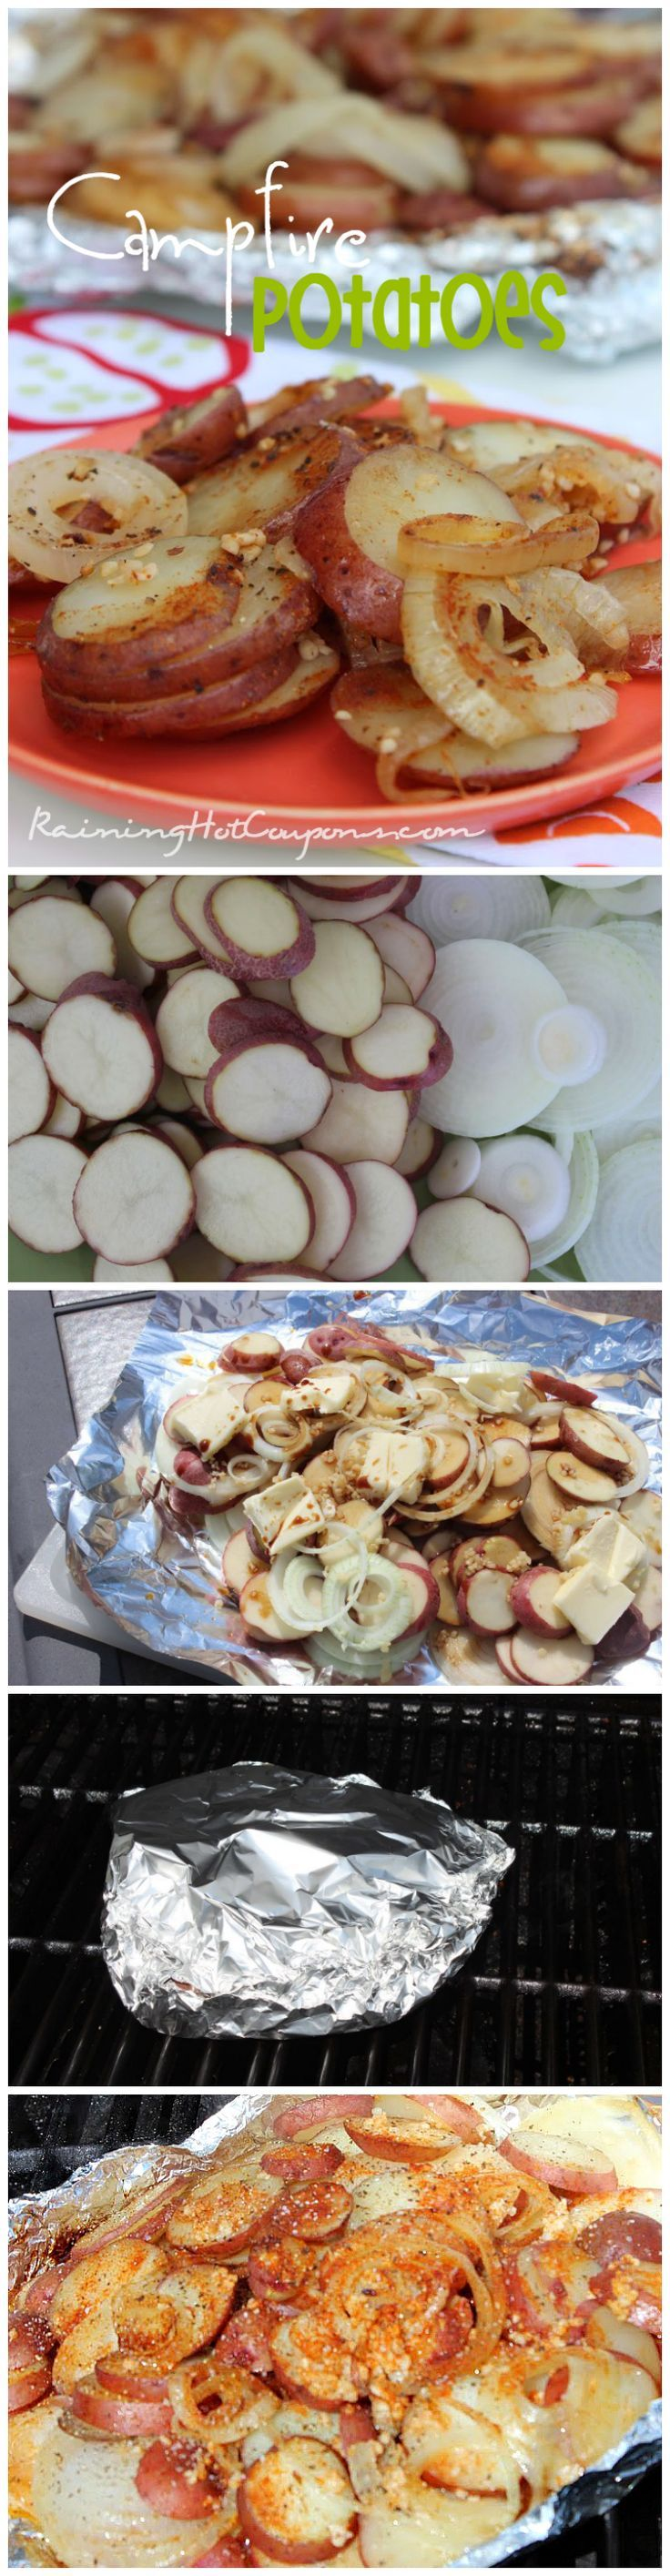 Campfire Potatoes. ( I have made these while camping and at home in the oven.  They are delicious and no messy cleanup.  Mary Schryver 7-24-15)